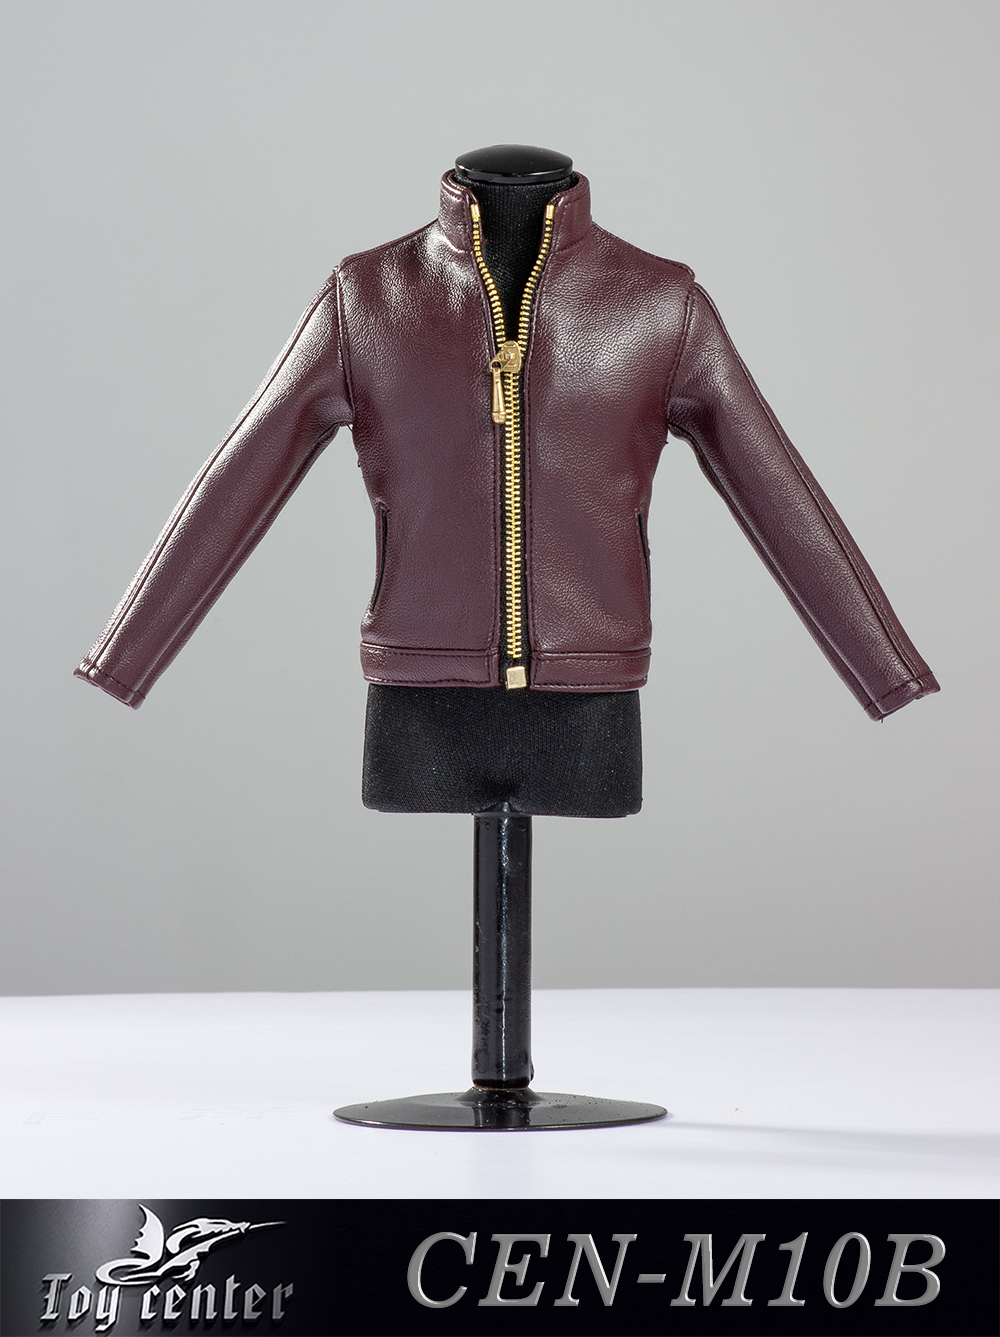 clothes - NEW PRODUCT: Toy center: 1/6 US team trend leather suit - a total of three colors A / B / C (CEN-M10 #) 13141110